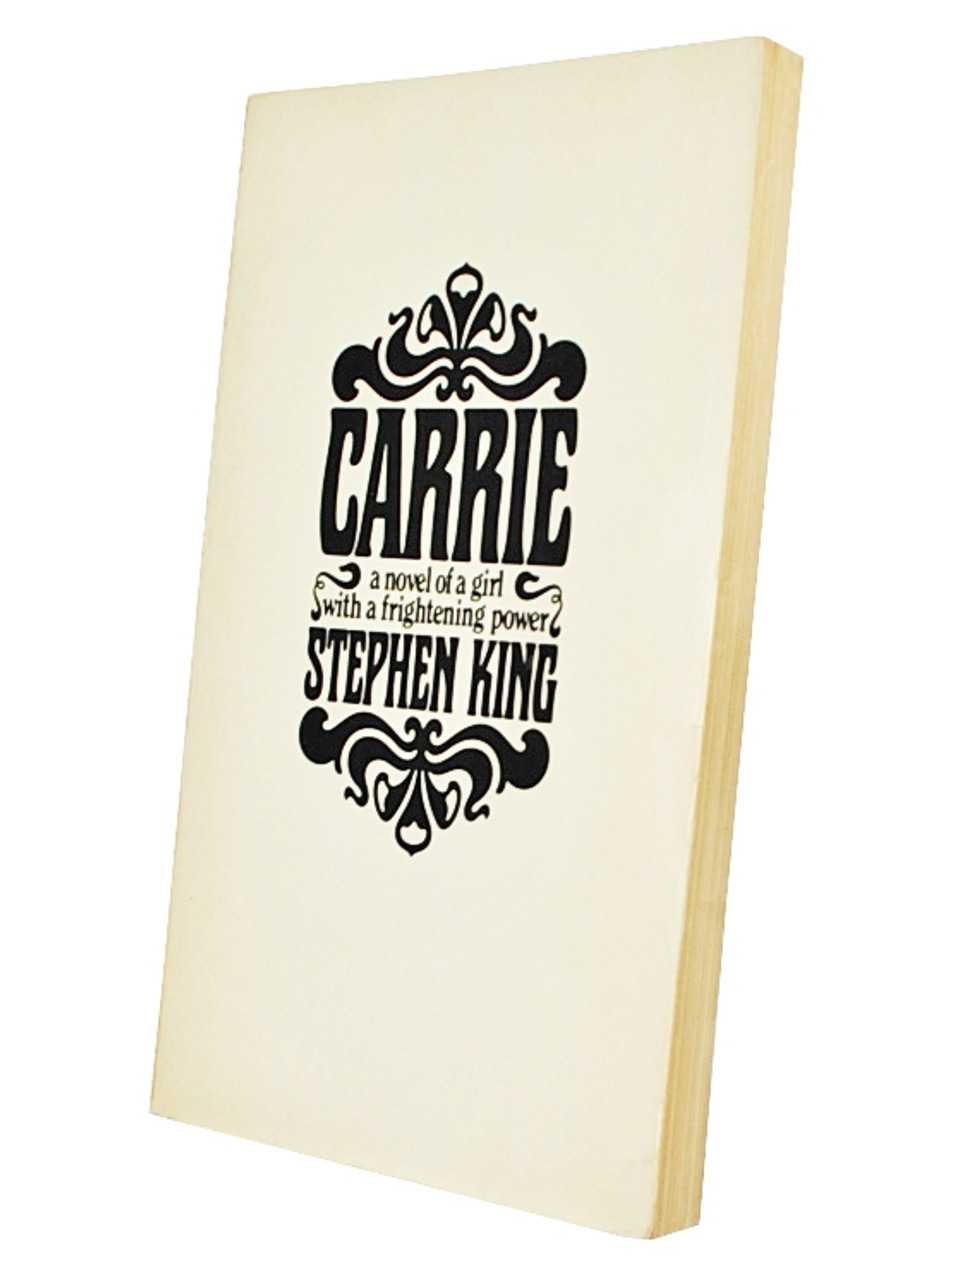 """Doubleday 1974, Stephen King """"Carrie"""" US Proof, Softcover (Near Fine)"""